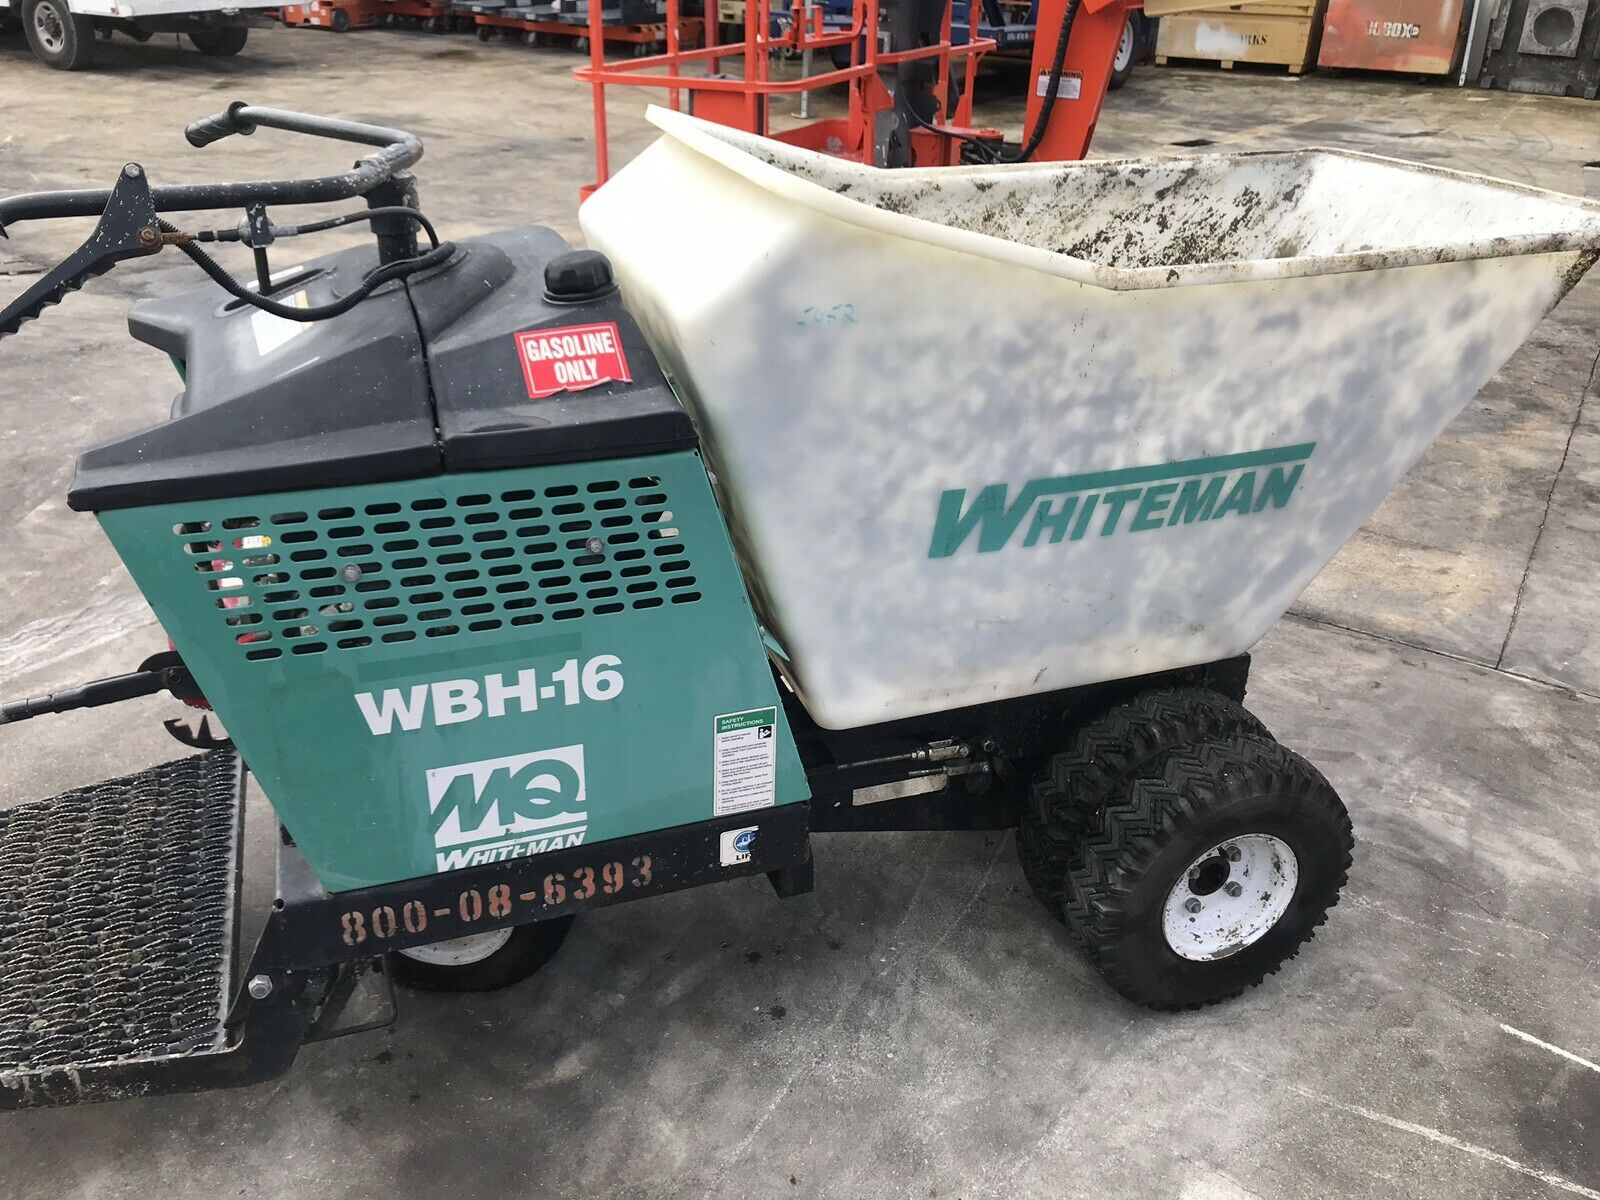 Used Whiteman WBH-16 Power Buggy Honda Gas Engine Concrete